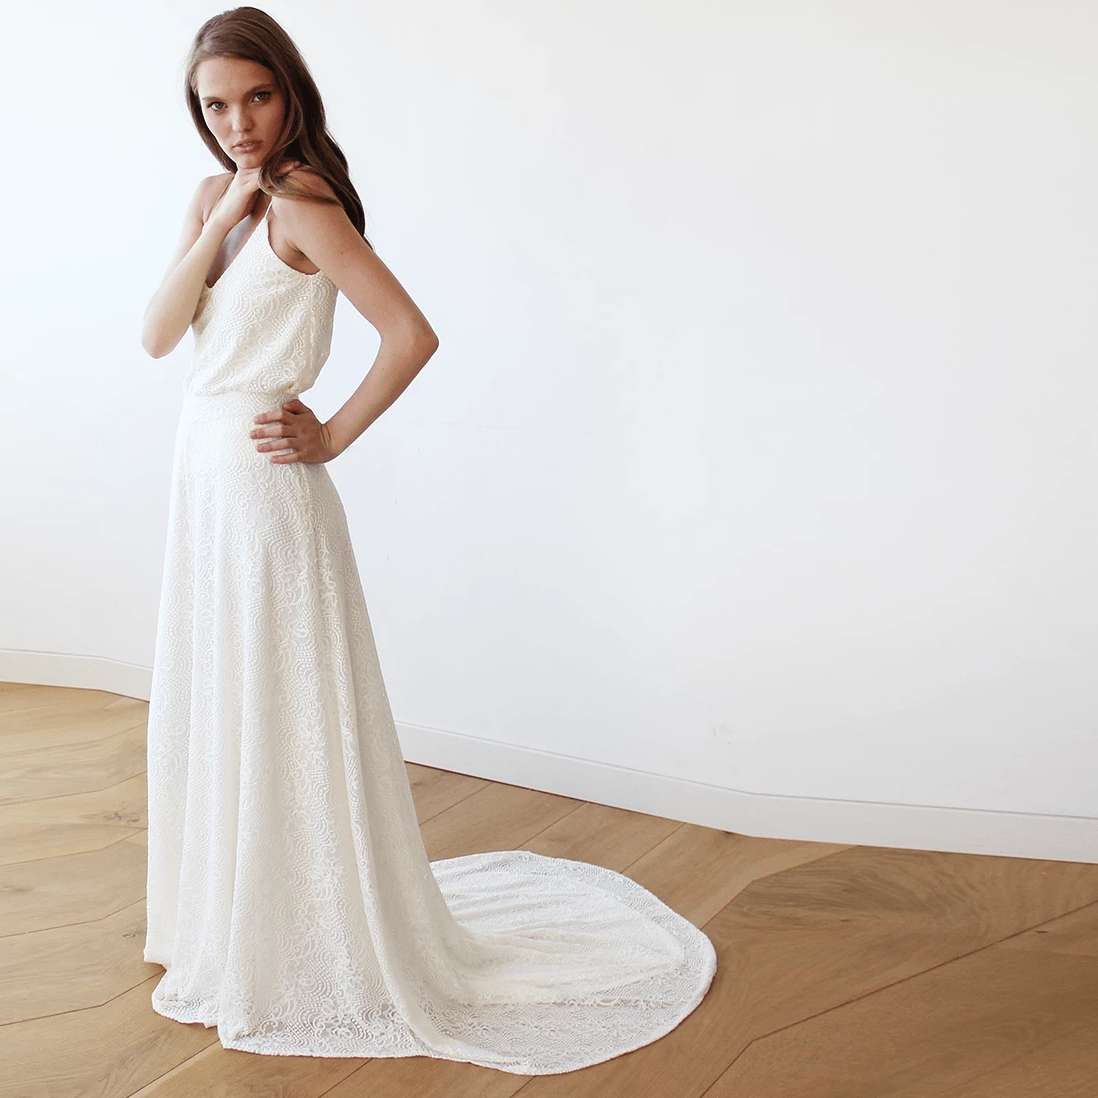 Floral Lace Bridal Maxi Skirt with long train 3026 - Blushfashion